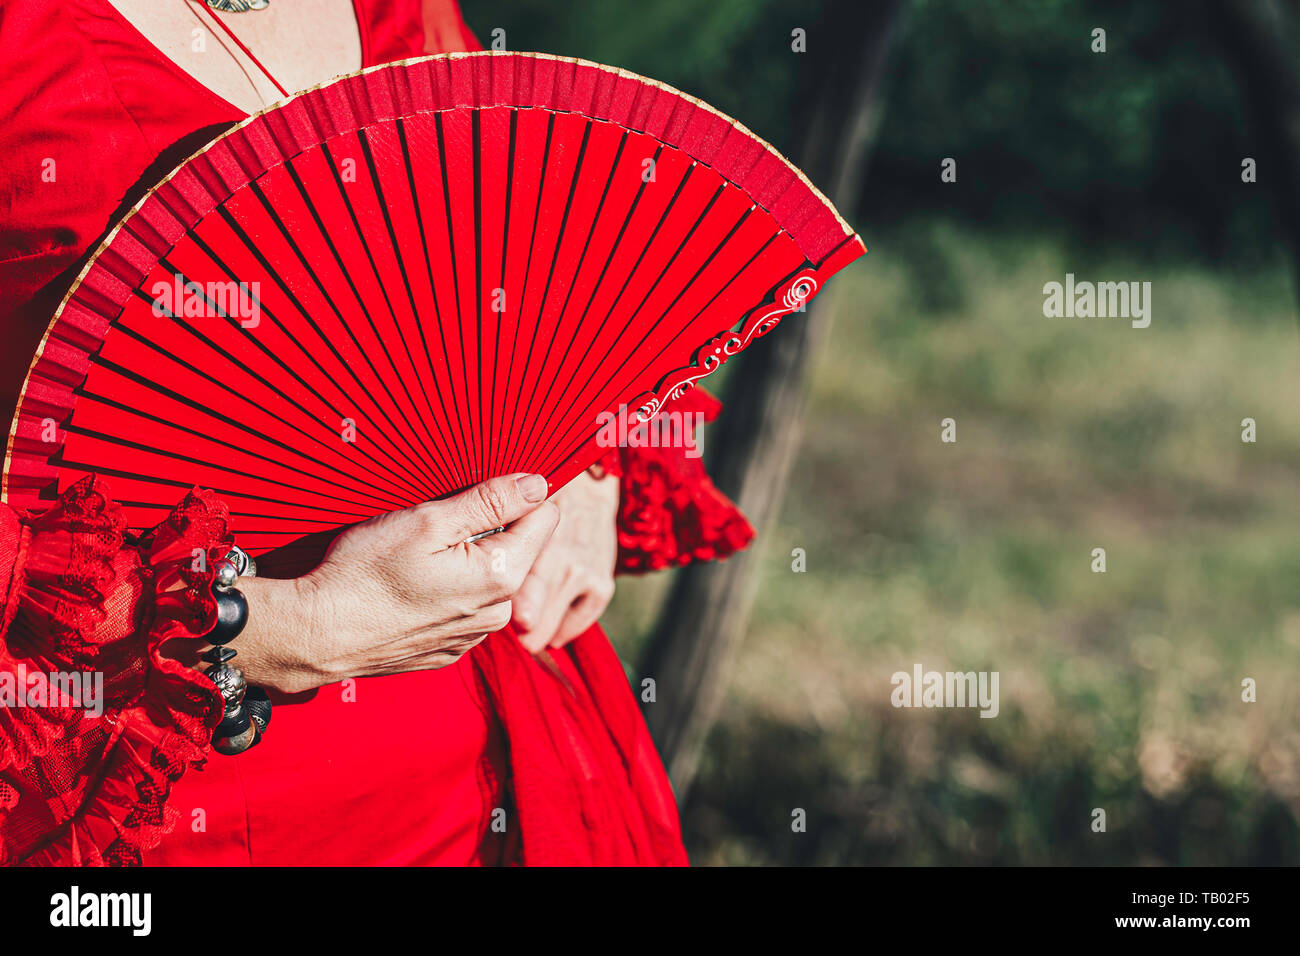 Woman in red dress with hand red open fan and bracelet, headless portrait - Stock Image